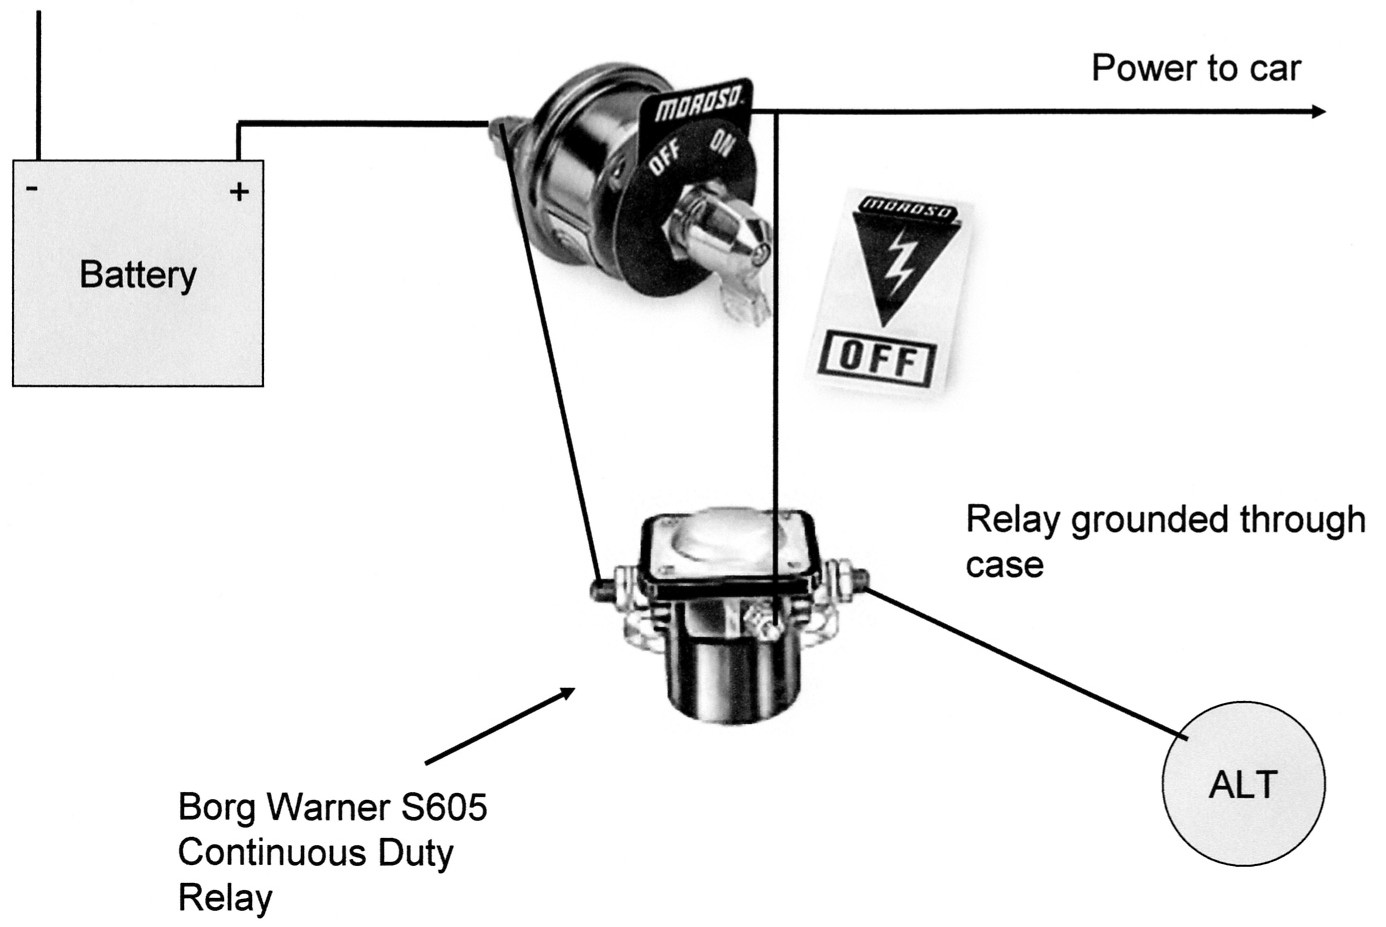 wire size 100 amp alternator moparts question and answer moparts Race Car Electrical Panels i just realized that is not wired correctly it won\u0027t work, and in fact, won\u0027t shut off, and the relay will be on anytime the disconnect is on